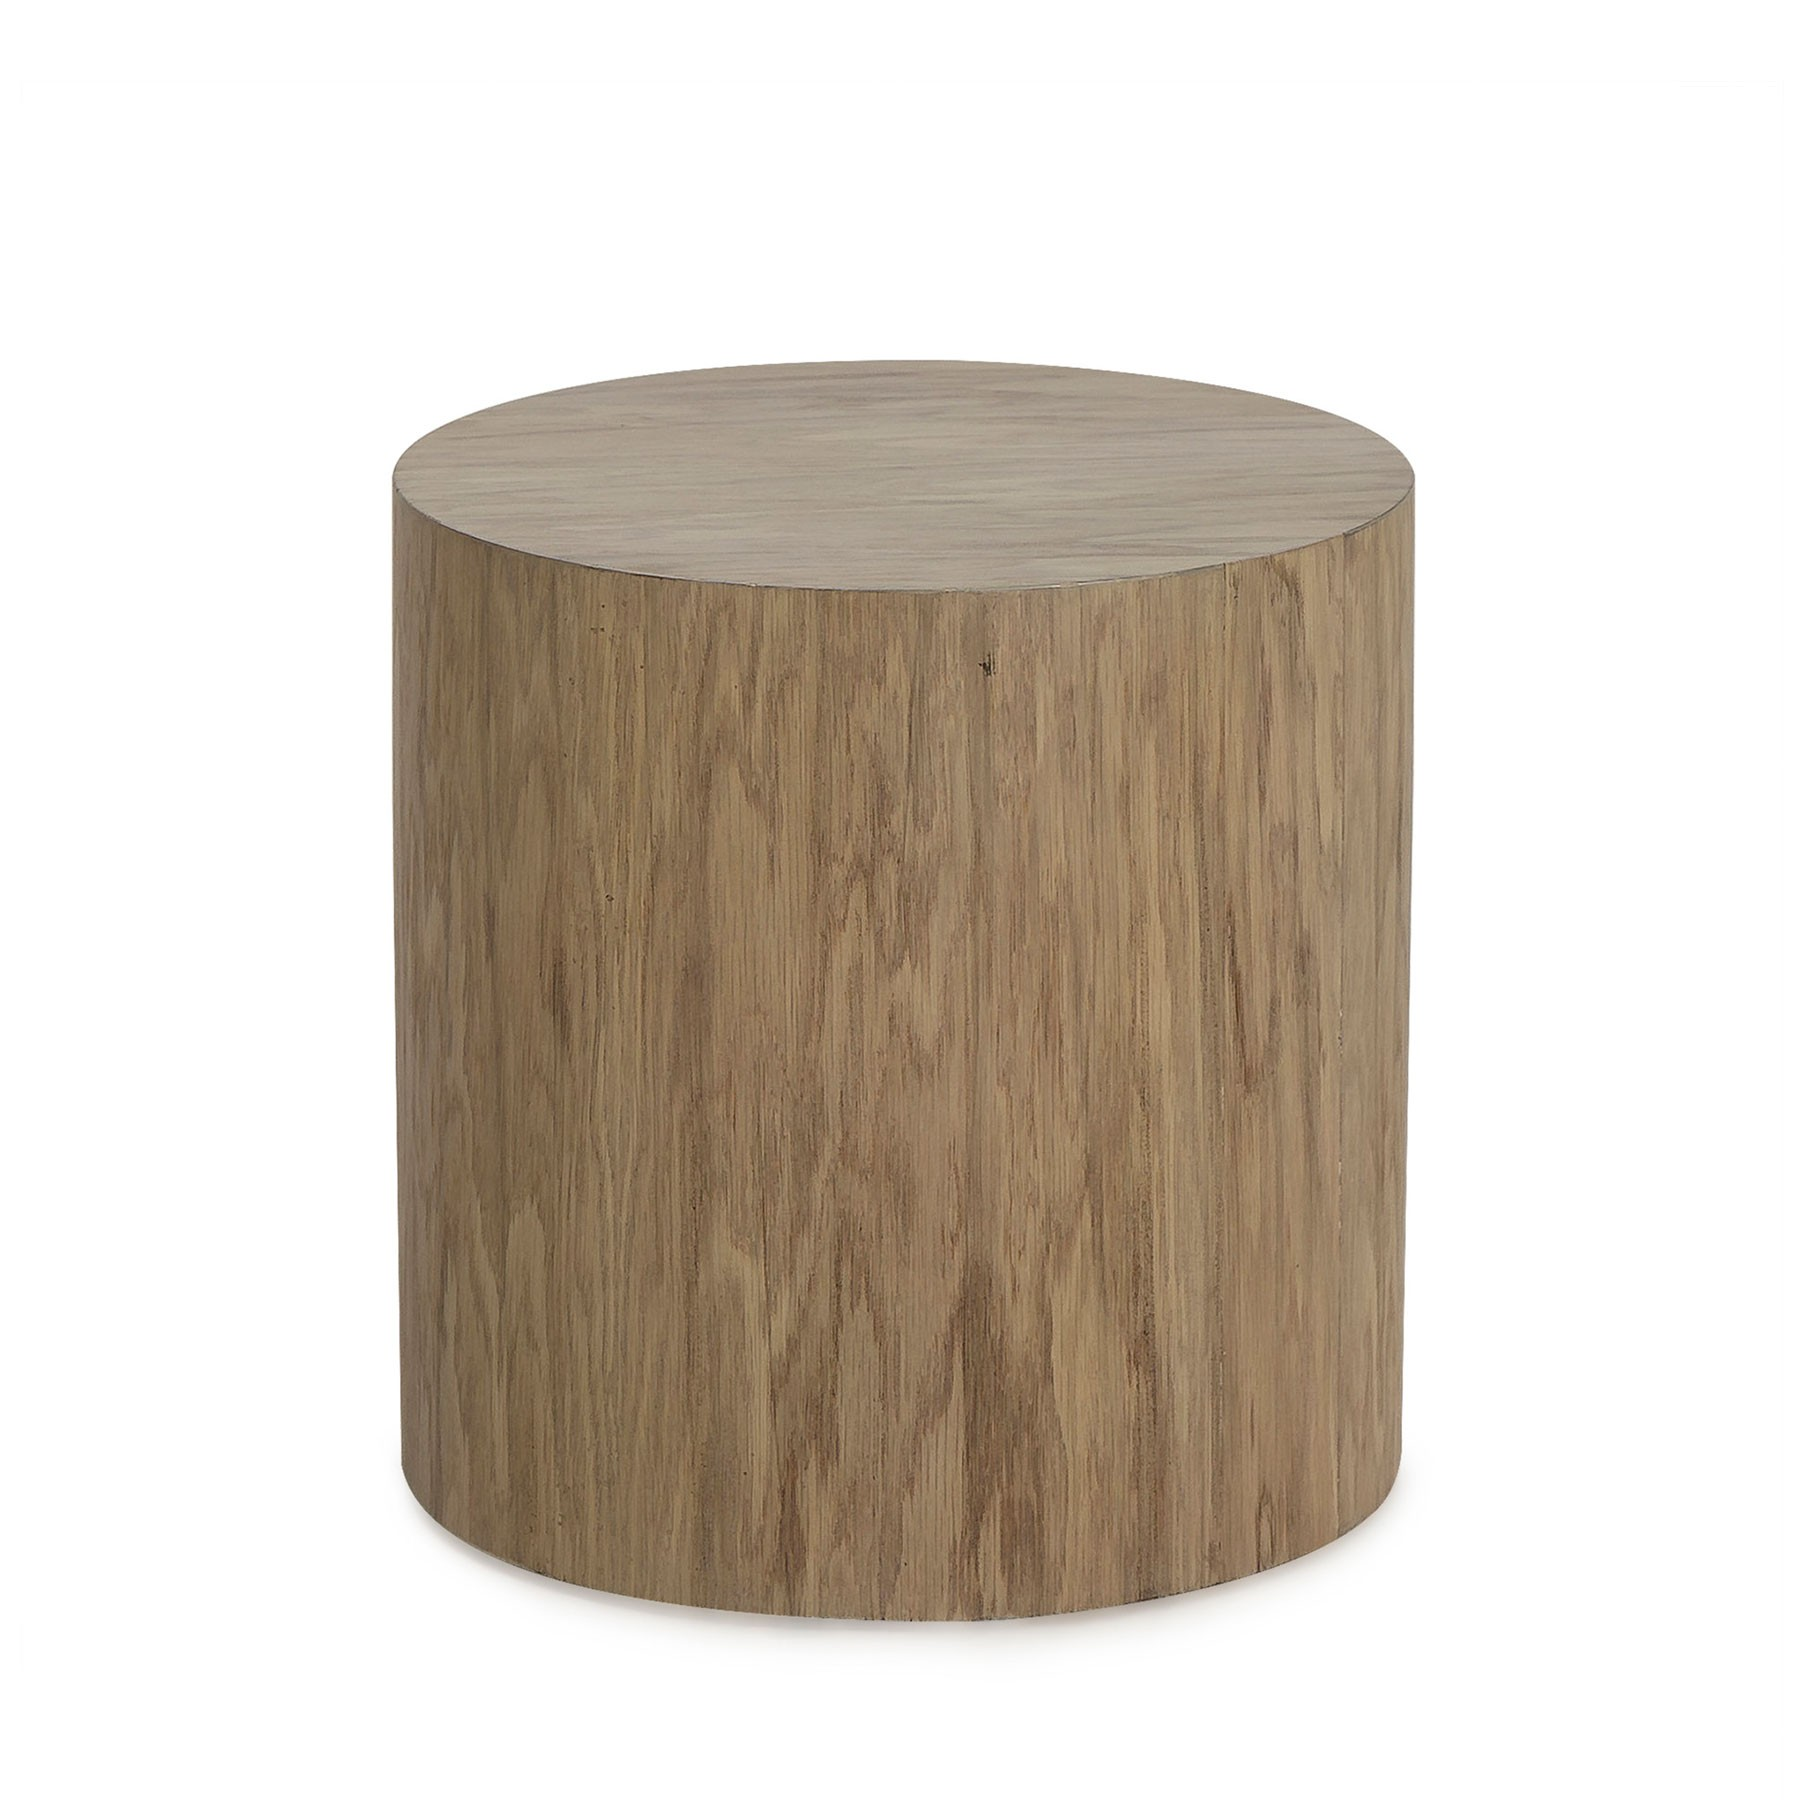 morgan accent table round oak hoppen resource decor brown resin wicker side build your own coffee yellow and gray chair cabin furniture wine cooler bucket cabinets with glass